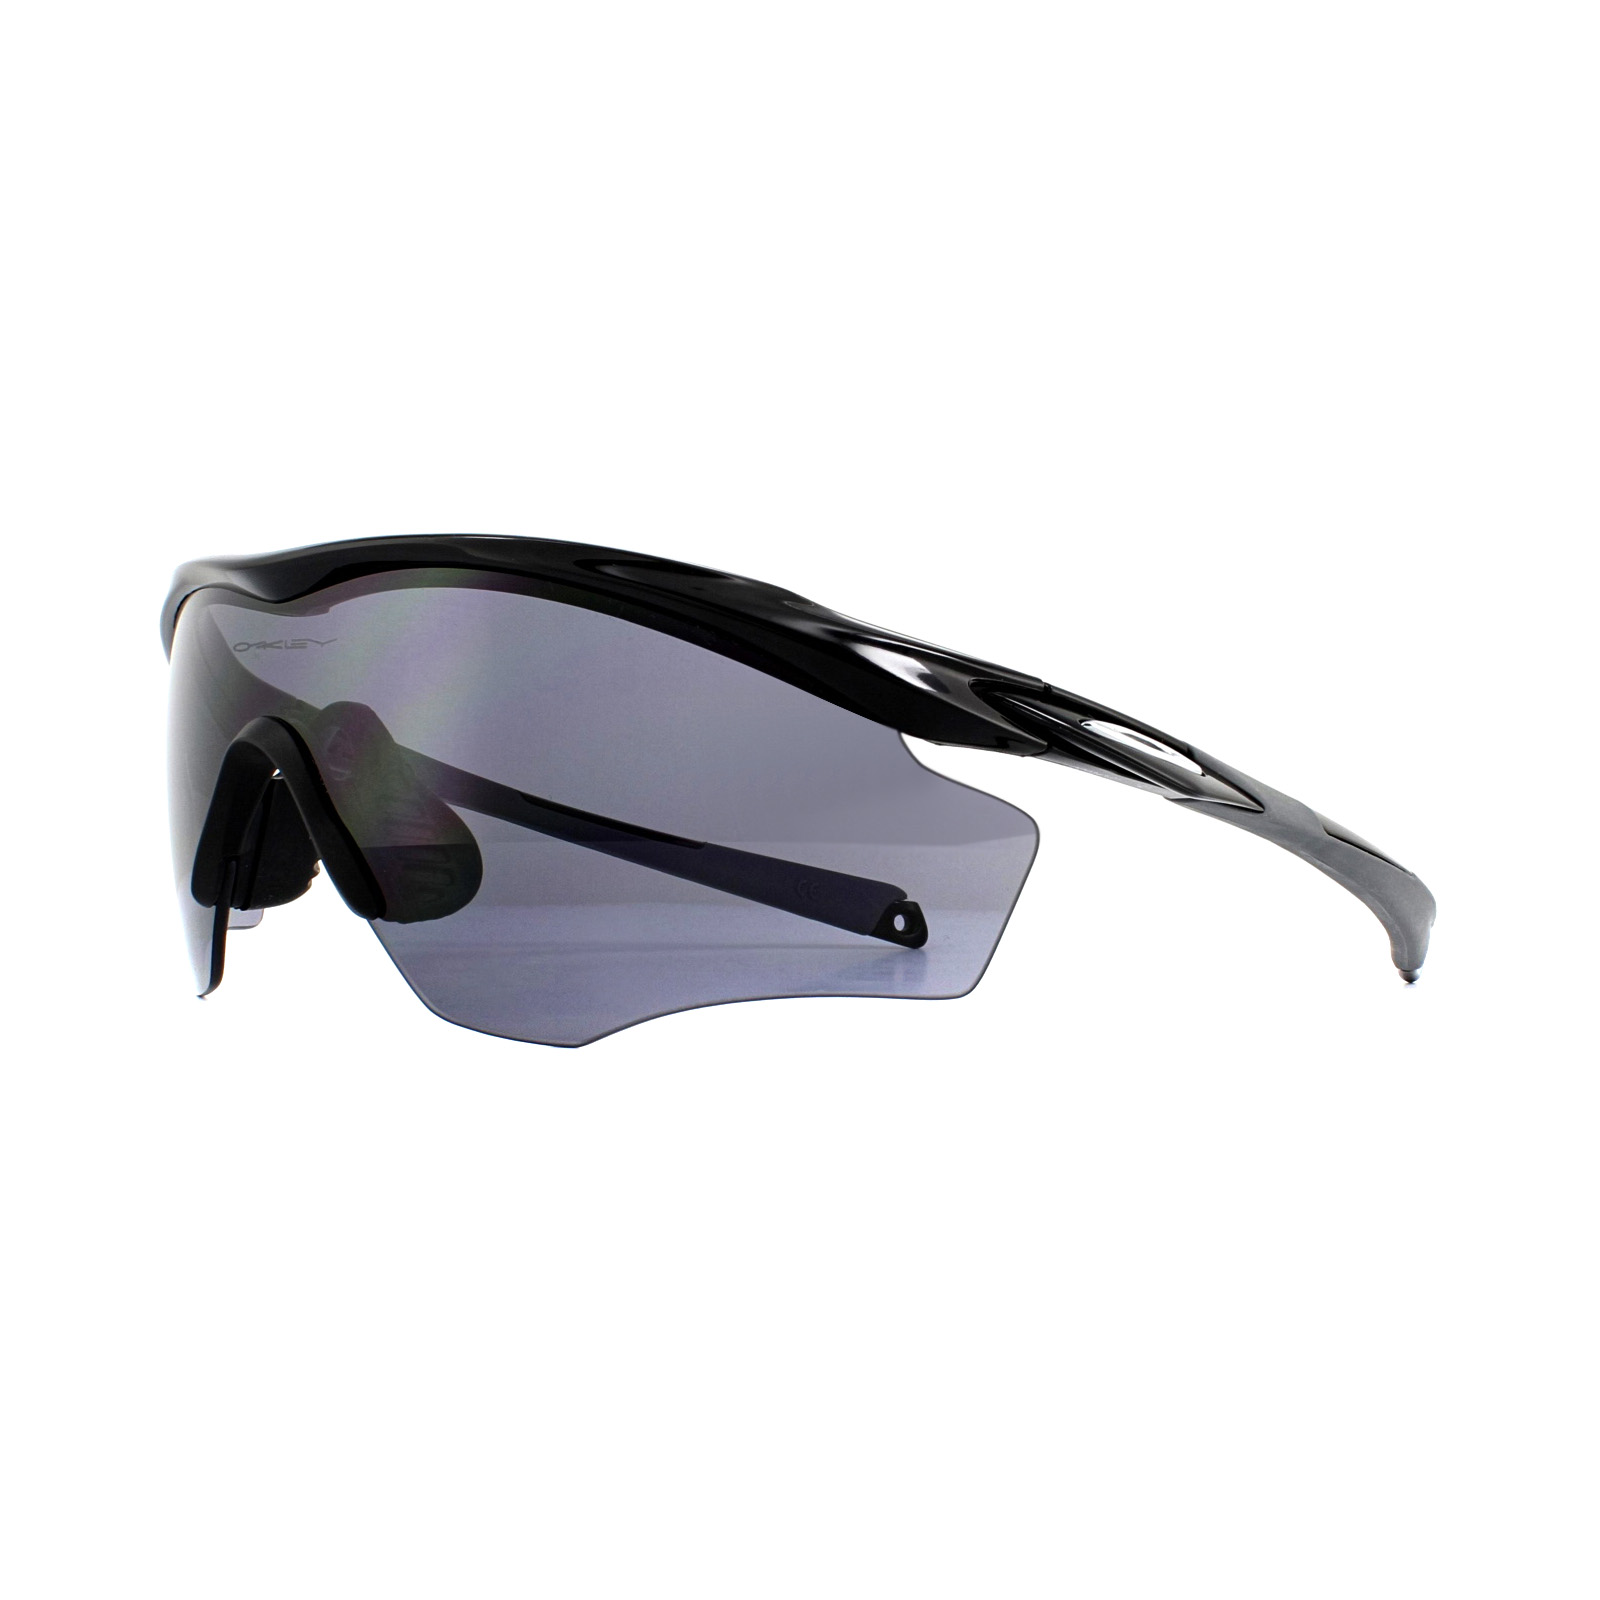 62a00161cfc Sentinel Oakley Sunglasses M2 Frame XL OO9343-01 Polished Black Grey